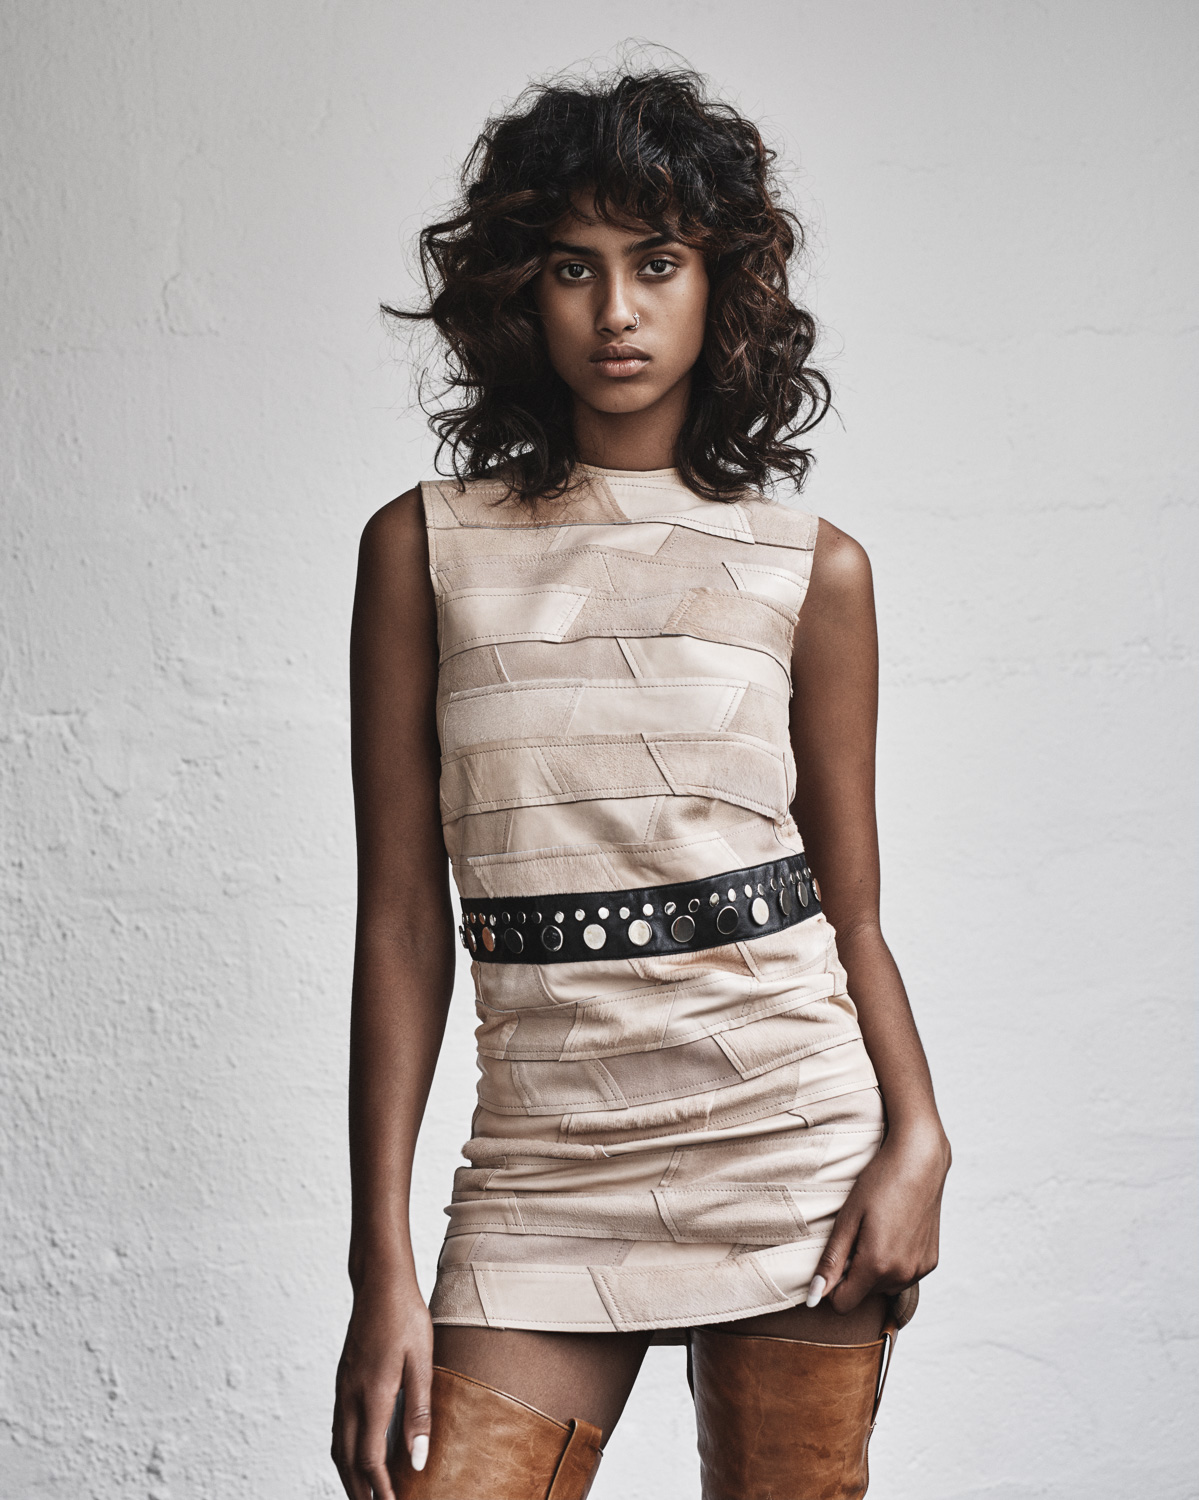 Imaan Hammam for VogueNL by Marc de Groot-18